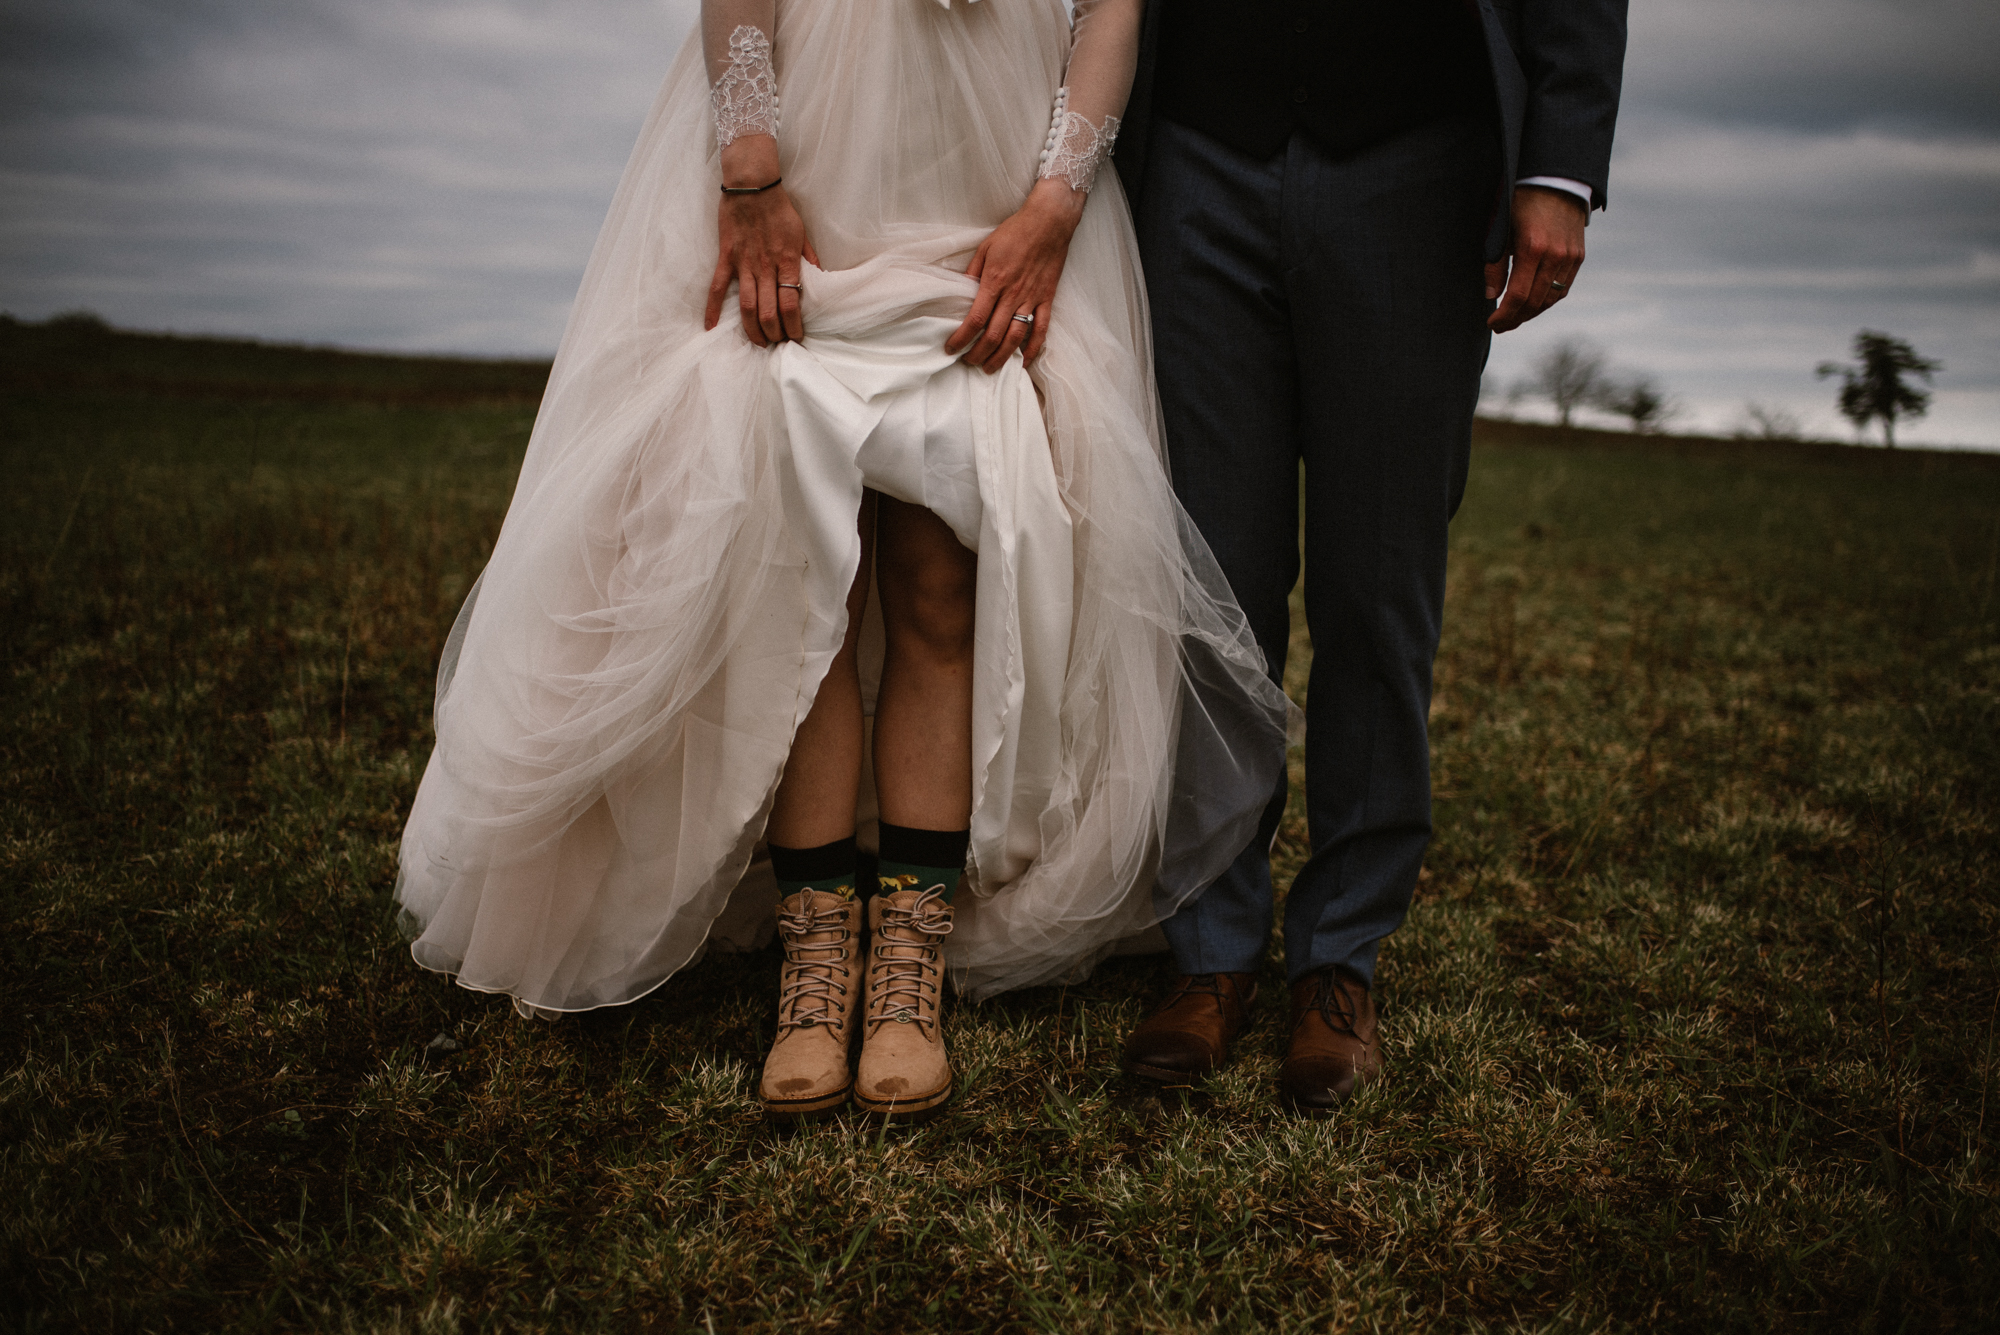 Paula and Andrew - Small Adventurous Wedding in Shenandoah National Park - Blue Ridge Mountain Wedding - White Sails Creative - Mountain Elopement_35.jpg